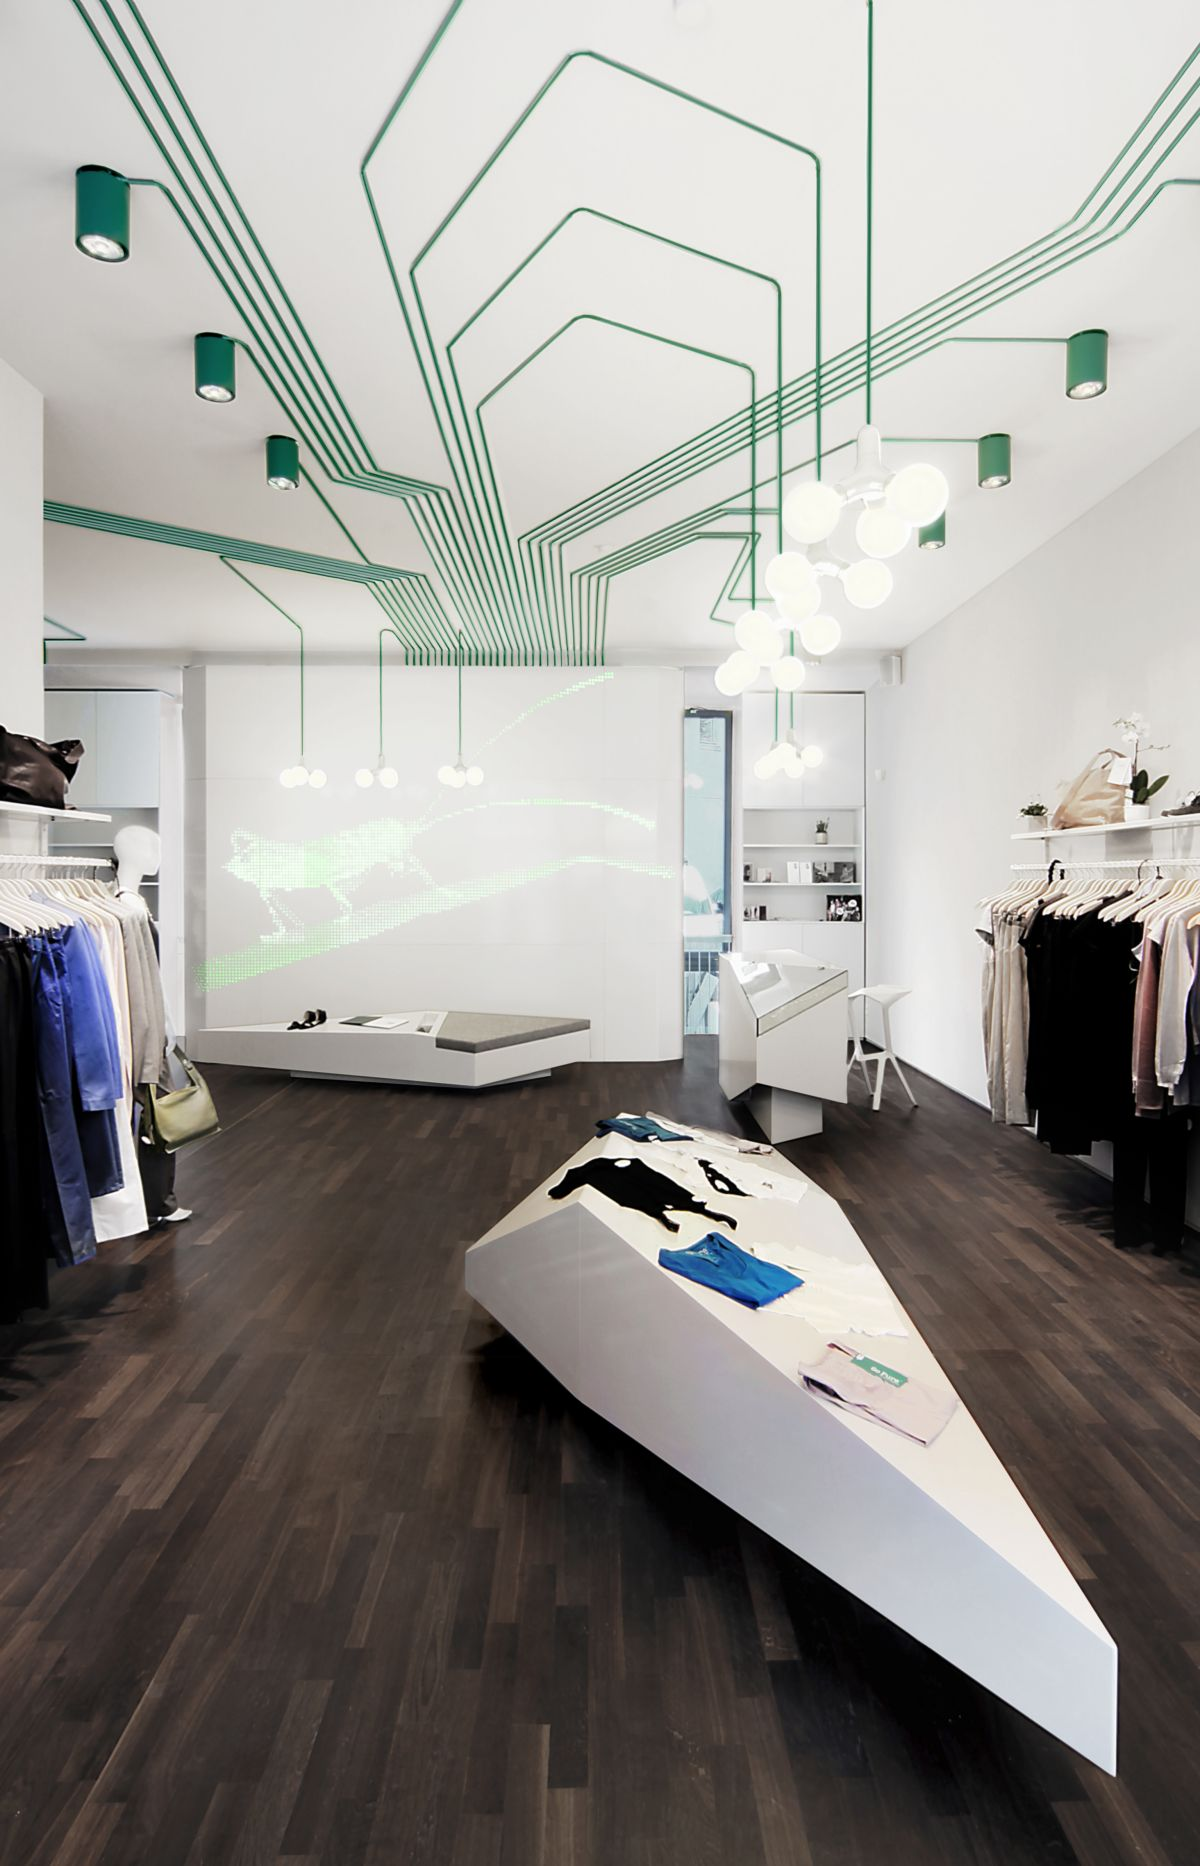 The maygreen shop interior by kinzo karmatrendz for Modern home decor boutiques